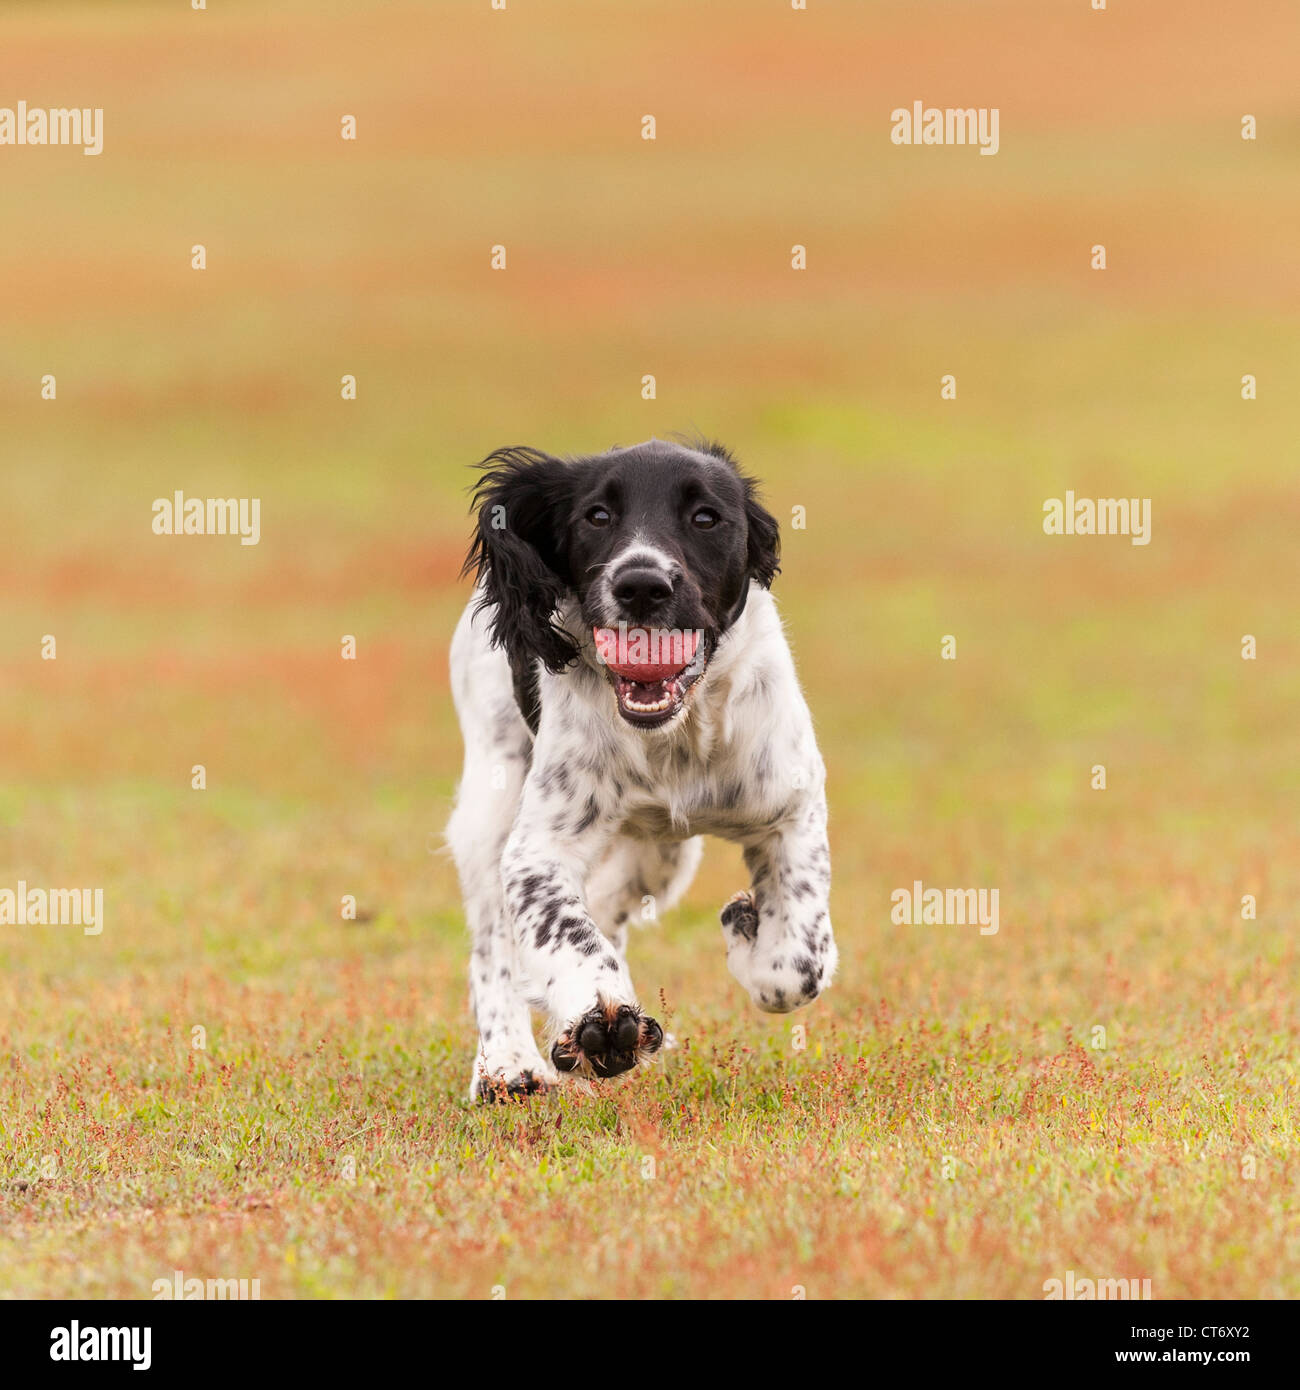 A 5 month old young English Springer Spaniel dog fetching a ball showing movement - Stock Image